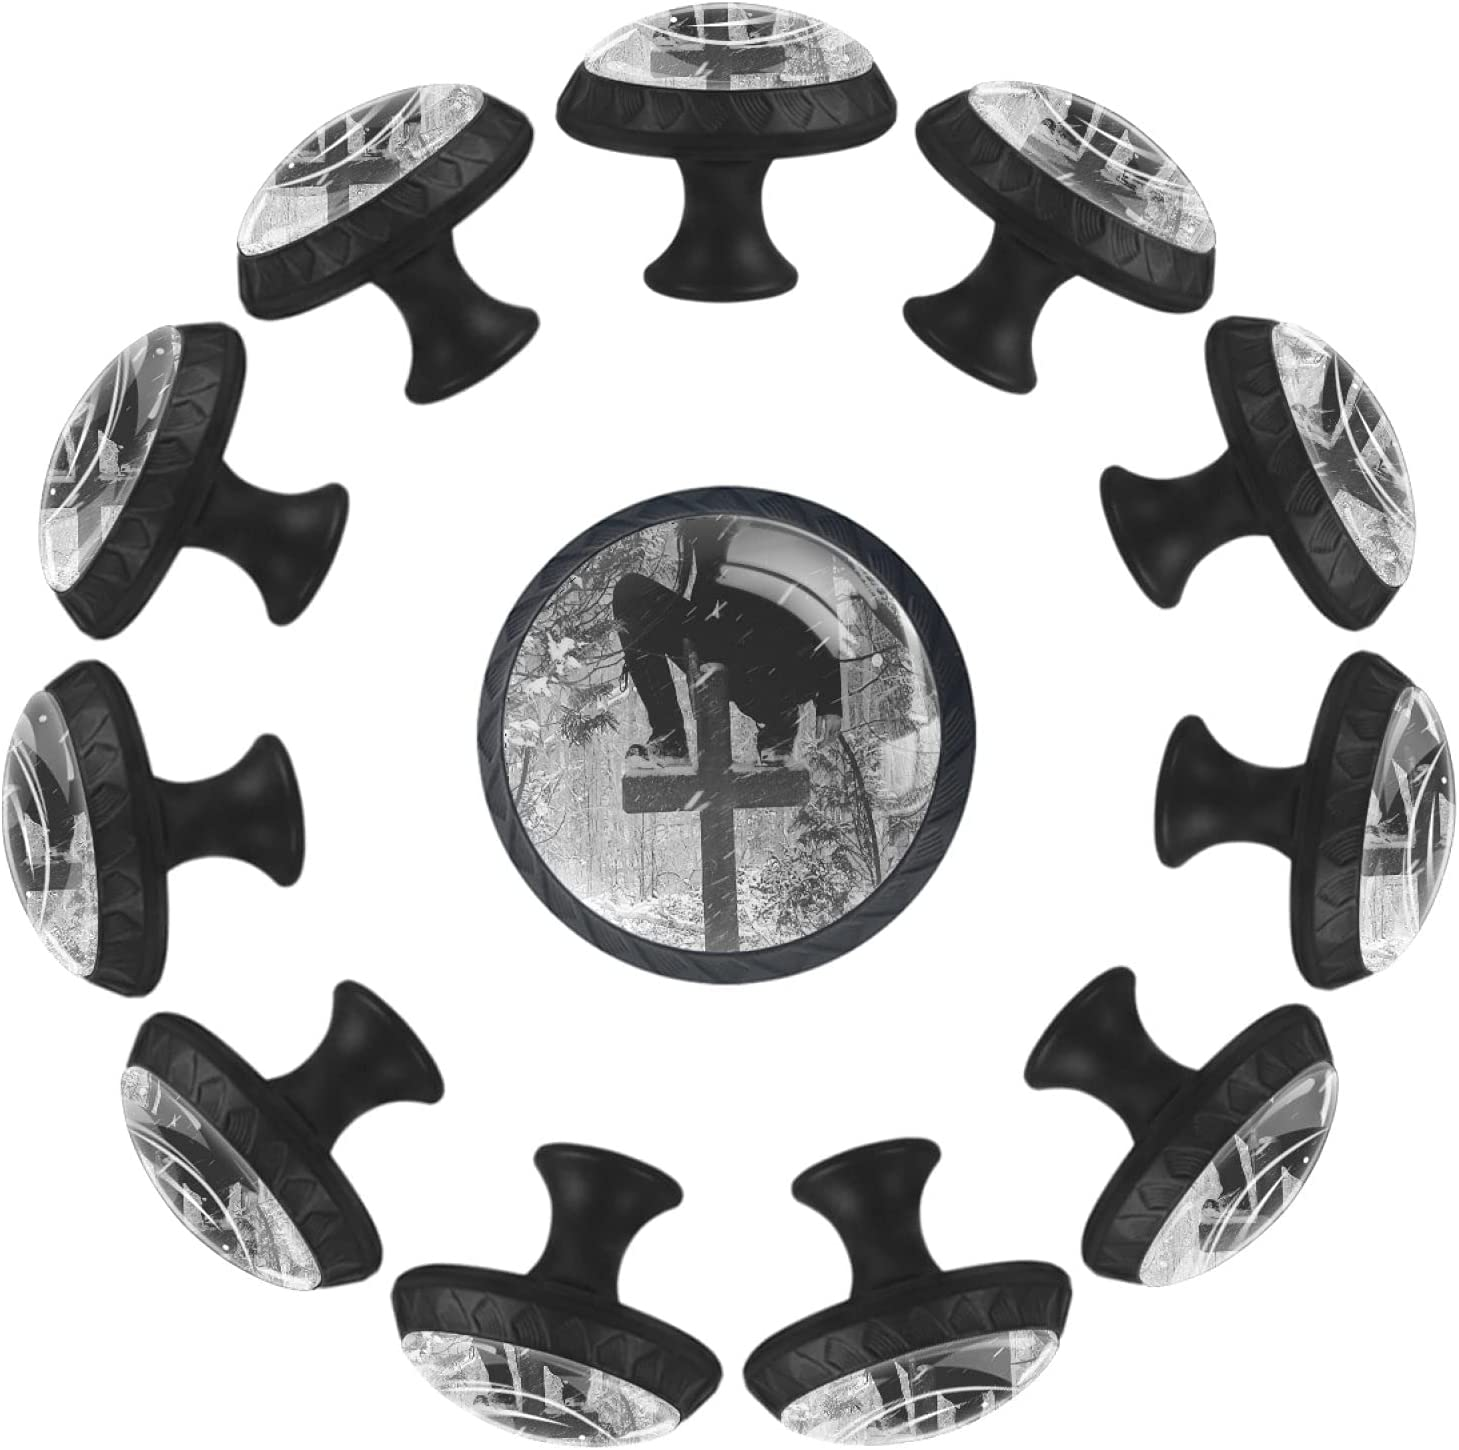 Credence Cross Outlet ☆ Free Shipping Monument Decorative Door Knobs Kitchen Crystal for Glass C